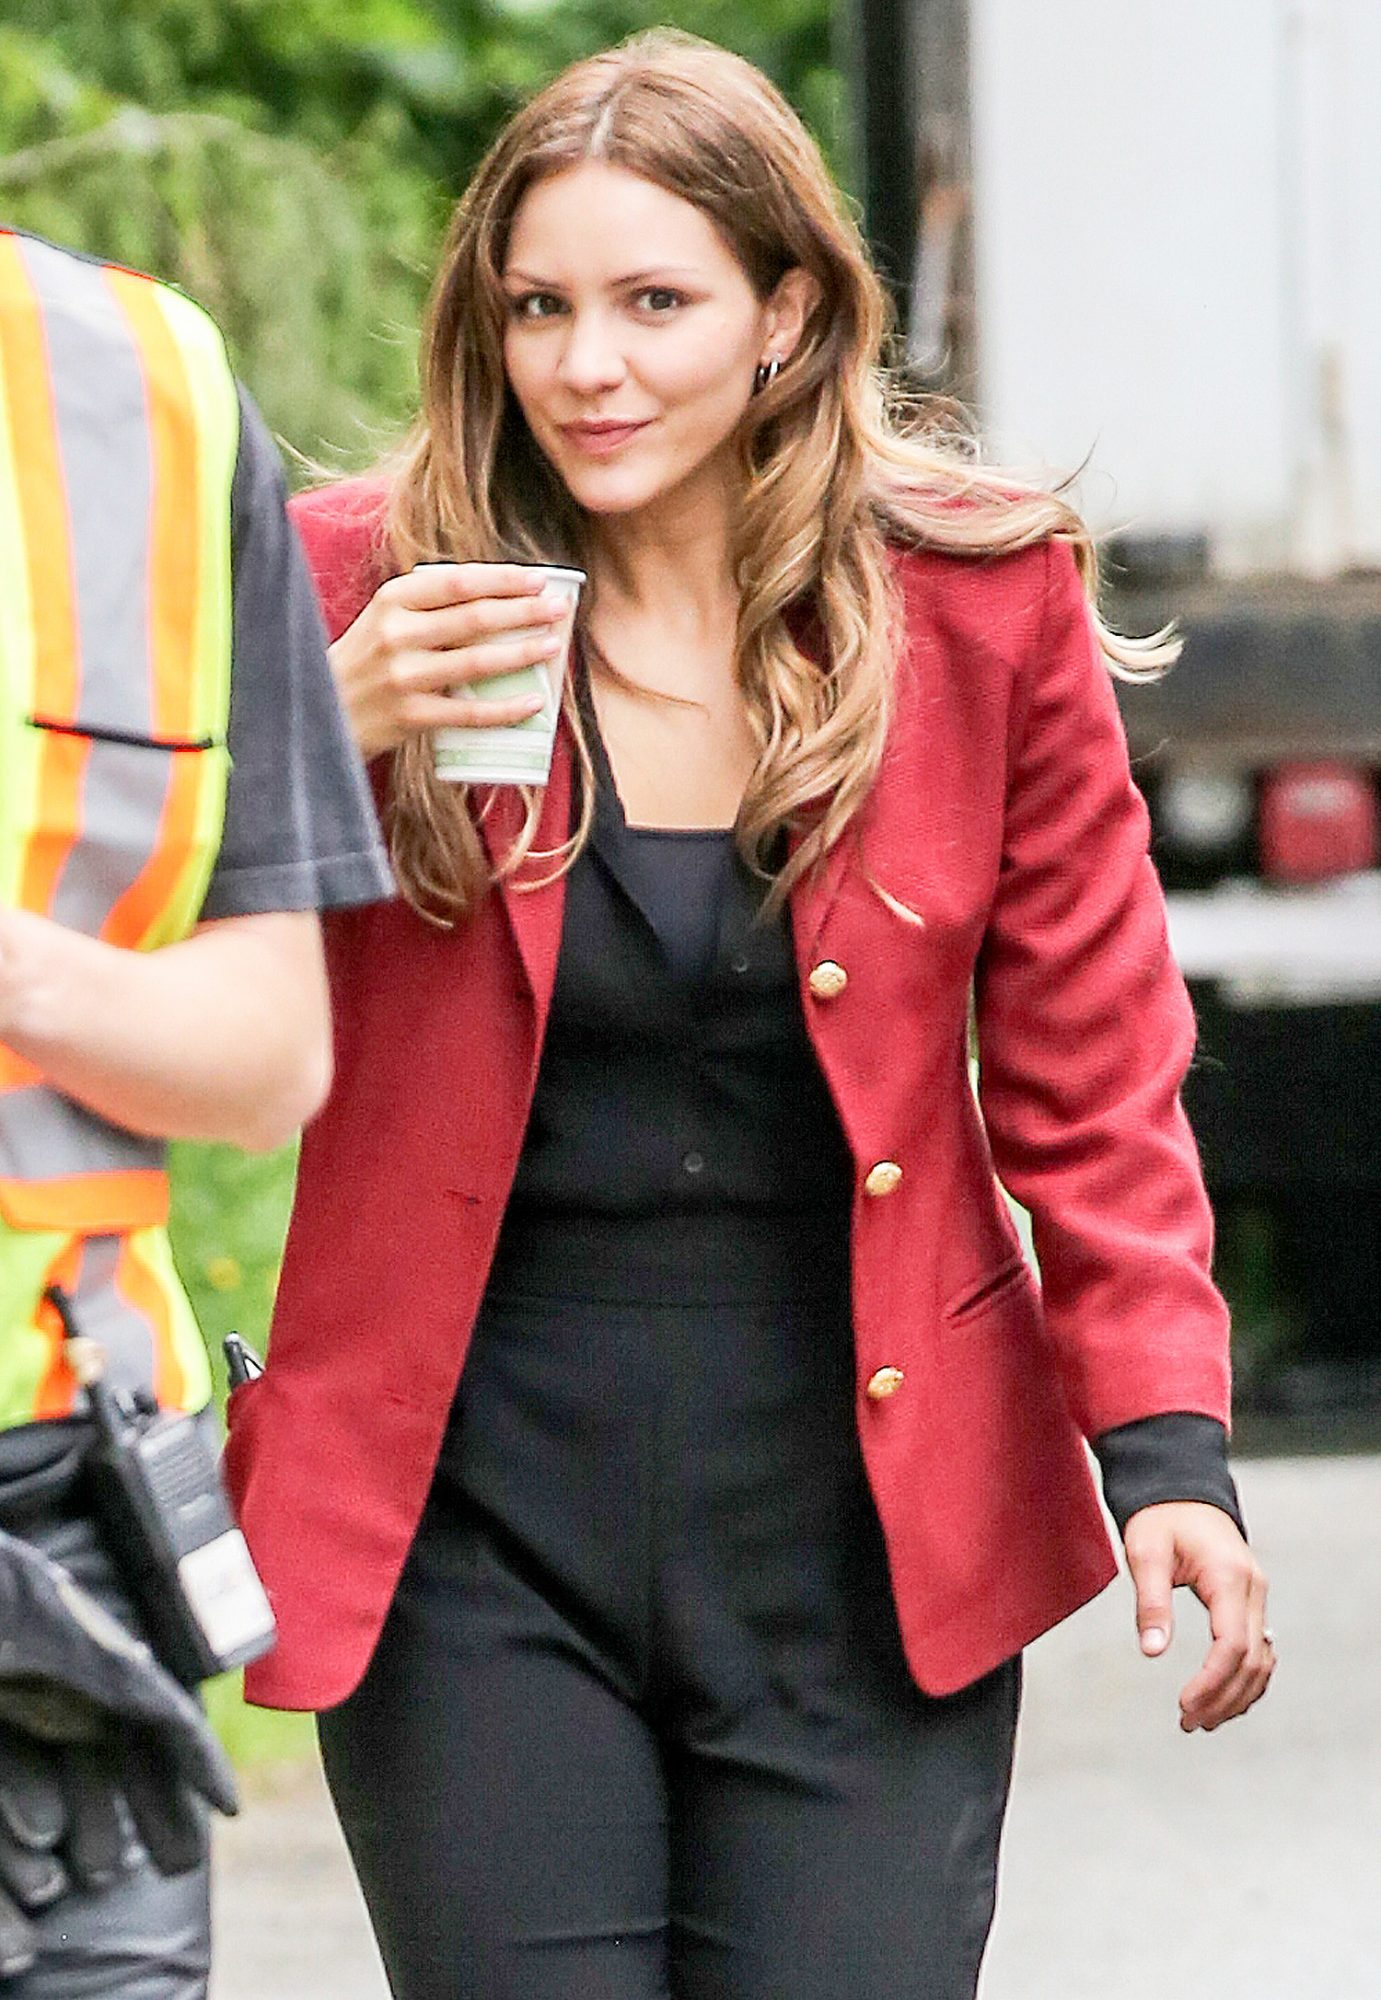 EXCLUSIVE: Katharine McPhee is Spotted on set of 'The Lost Wife of Robert Durst' in Vancouver